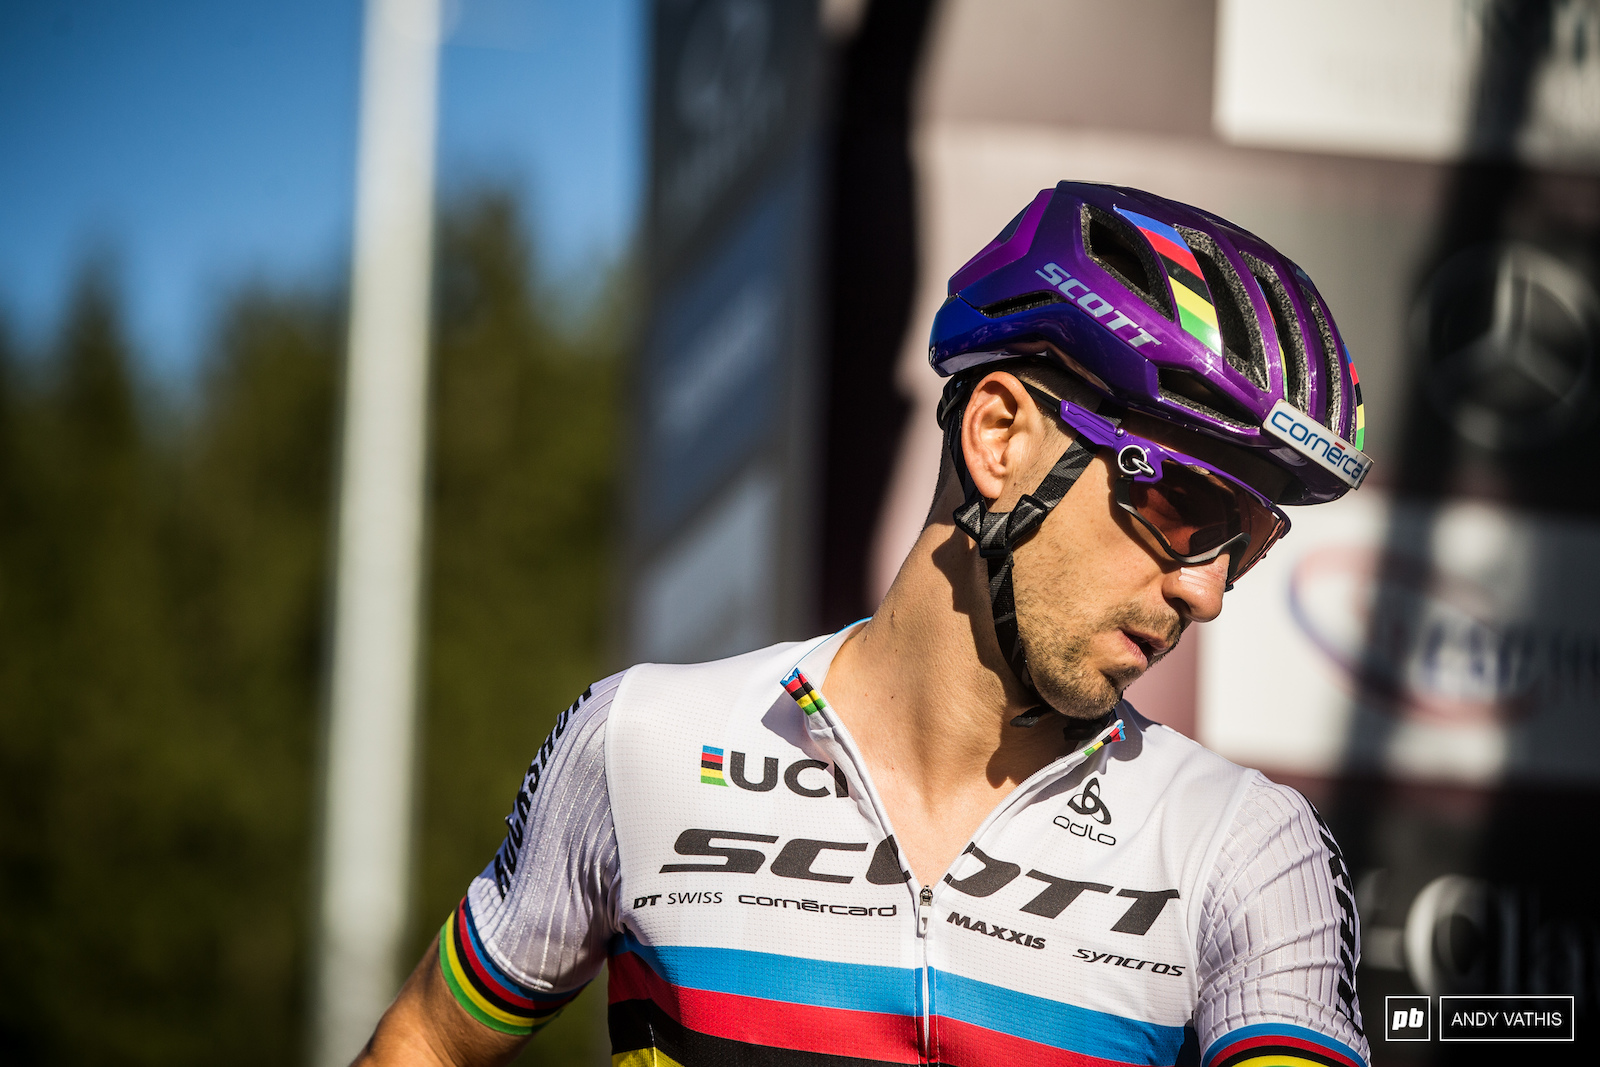 Nino Schurter is hungry for more after a few misfires earlier in the week.